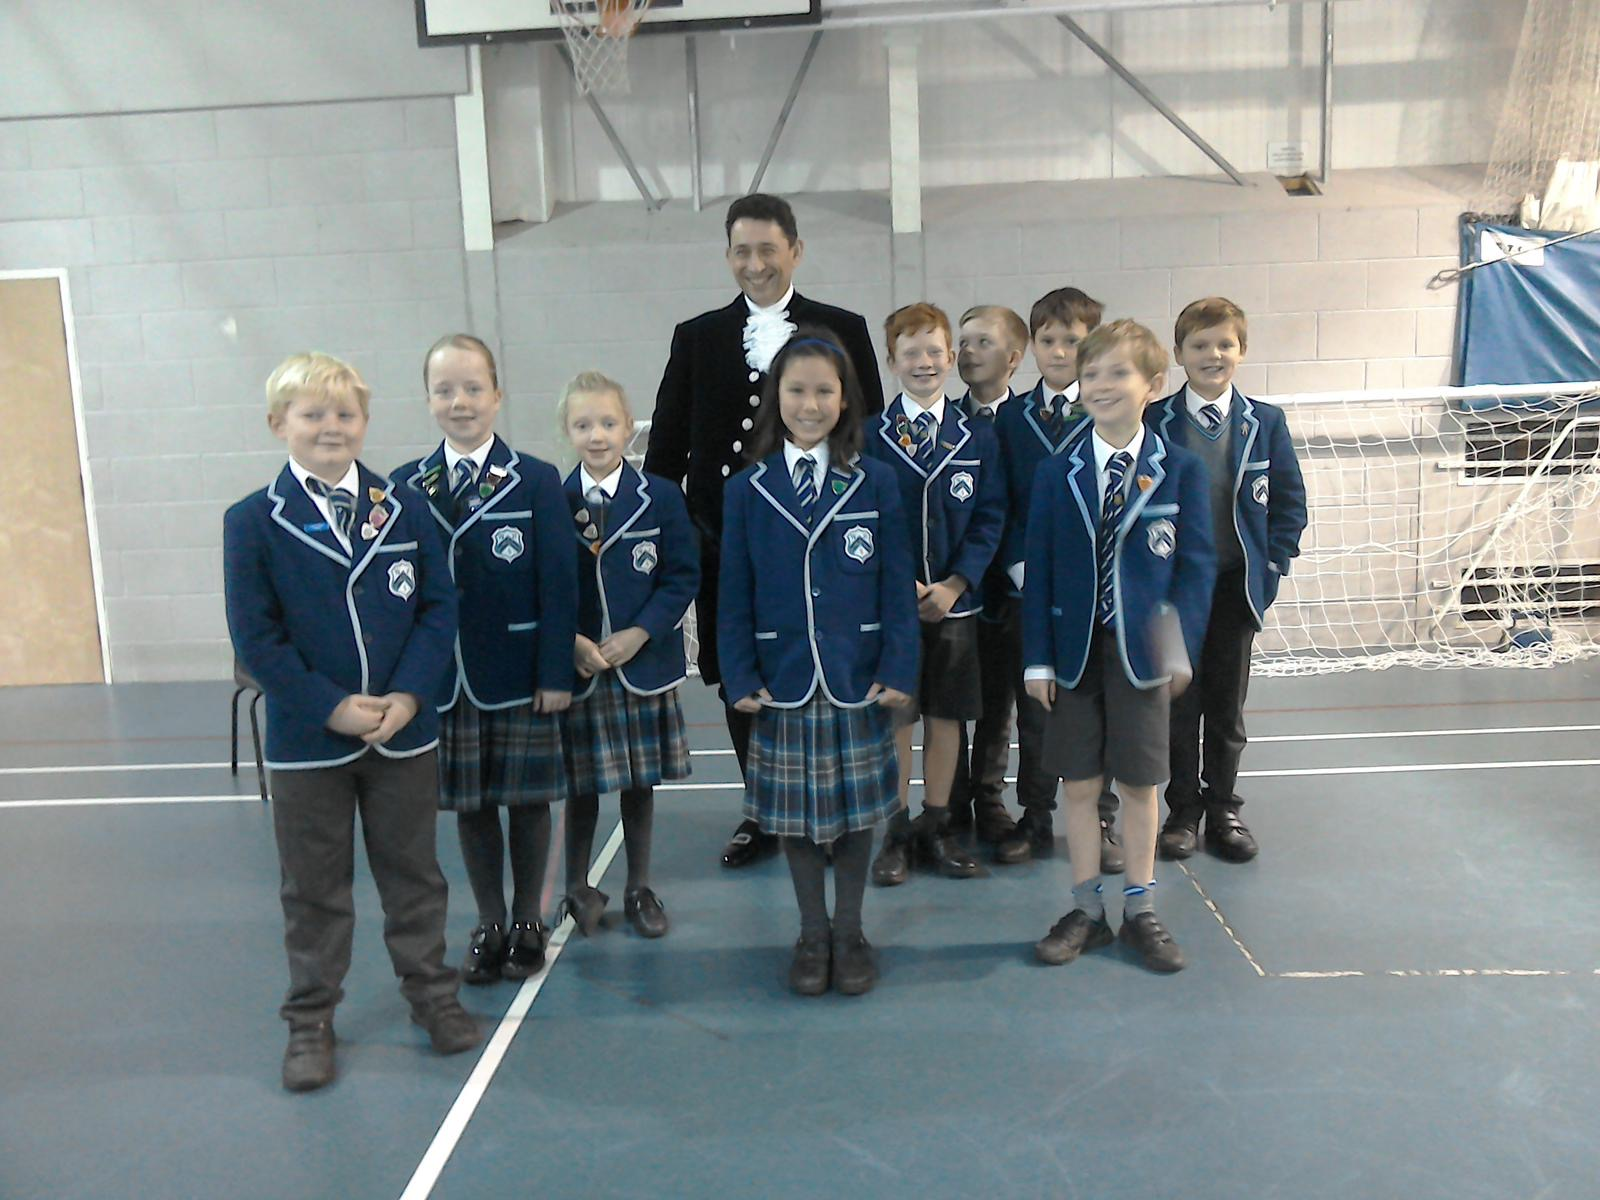 Westville House School have a special visit from the High Sheriff of West Yorkshire Paul Lawrence